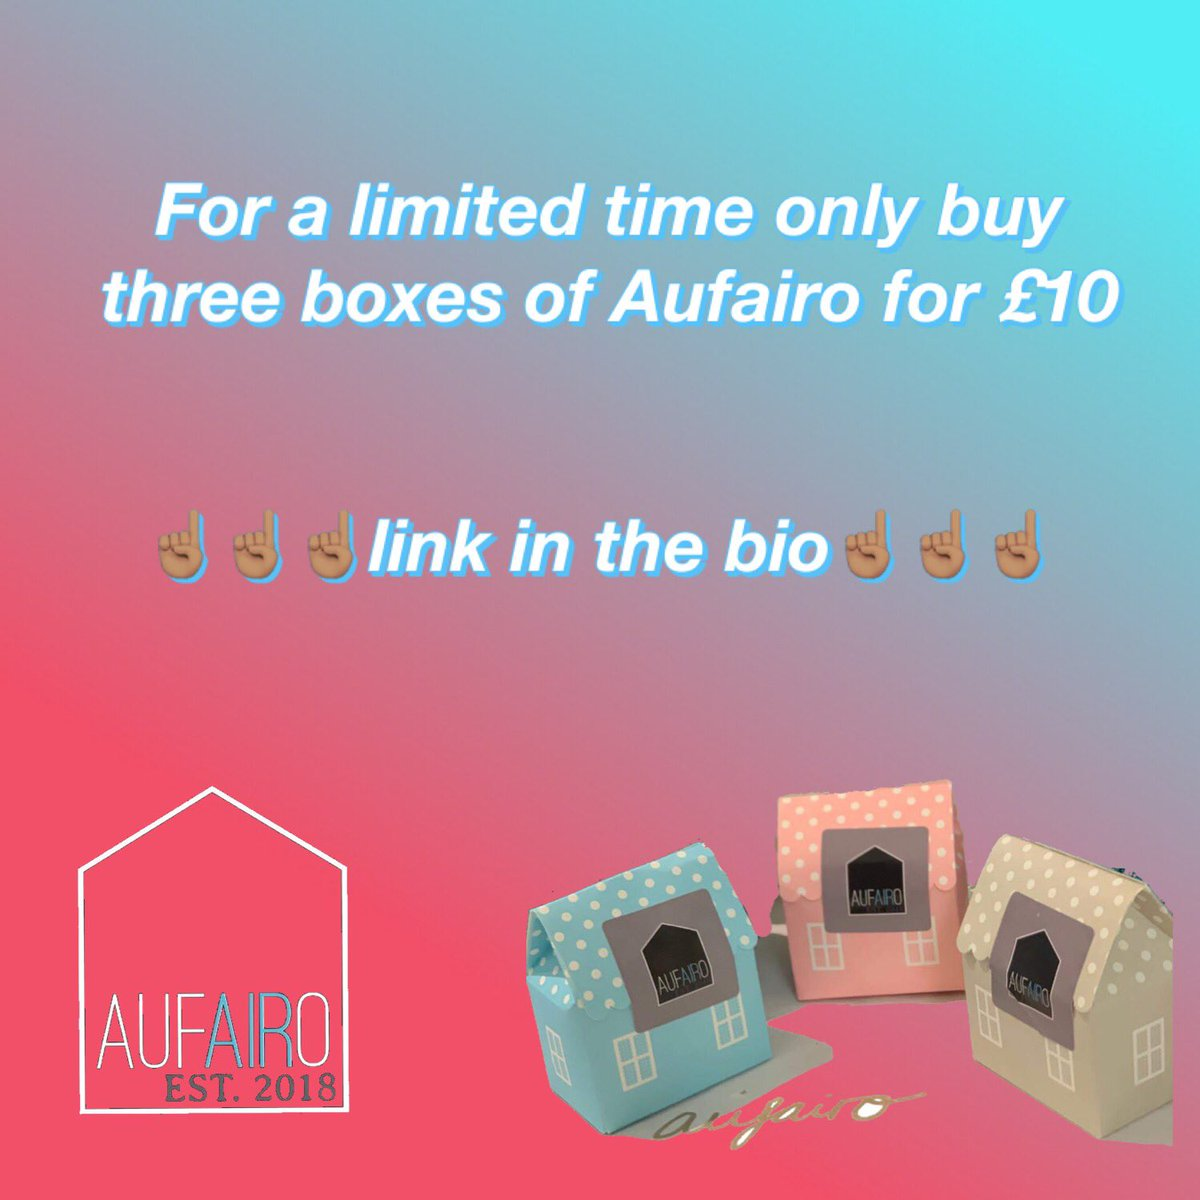 Get yours now ‼️ limited time only‼️🤩 comment below your favourite colour  #youngenterprise #air #oxygen #zeolite #zeo #rocks #airfreshener #clean #reusables #ecofriendly #business #small #ye #cool #intresting #lifehacks #hacks #smallbusiness #localbusiness #harrow #london